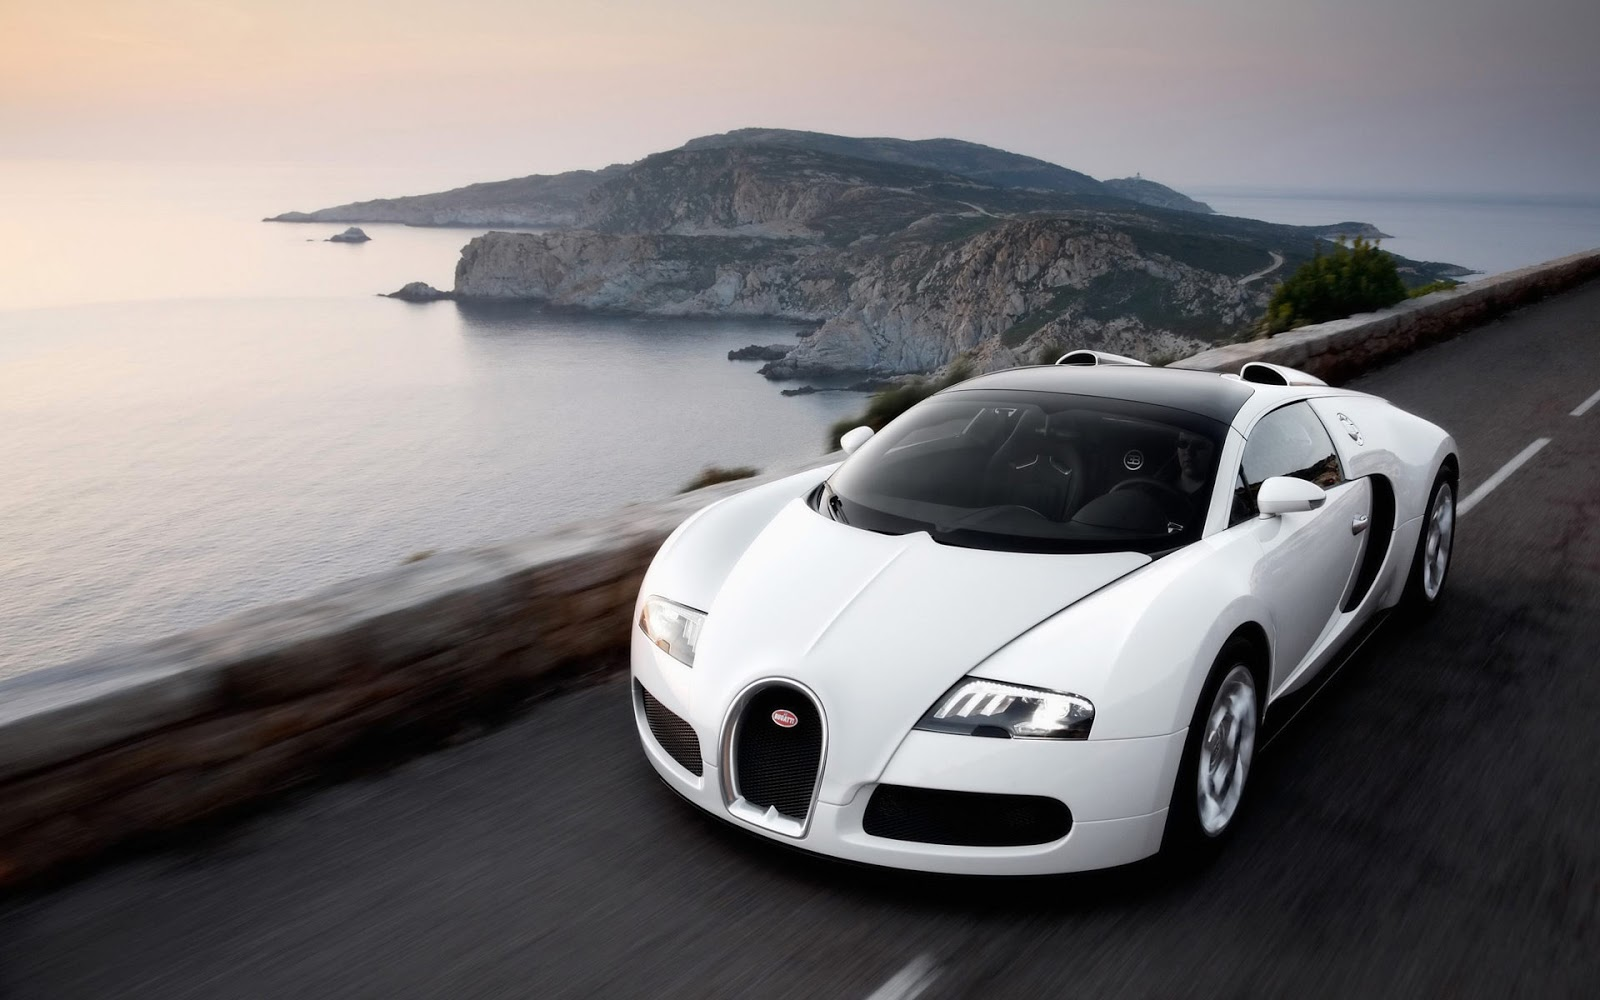 Bugatti-Veyron-Super-Sport-wallpaper-wp424285